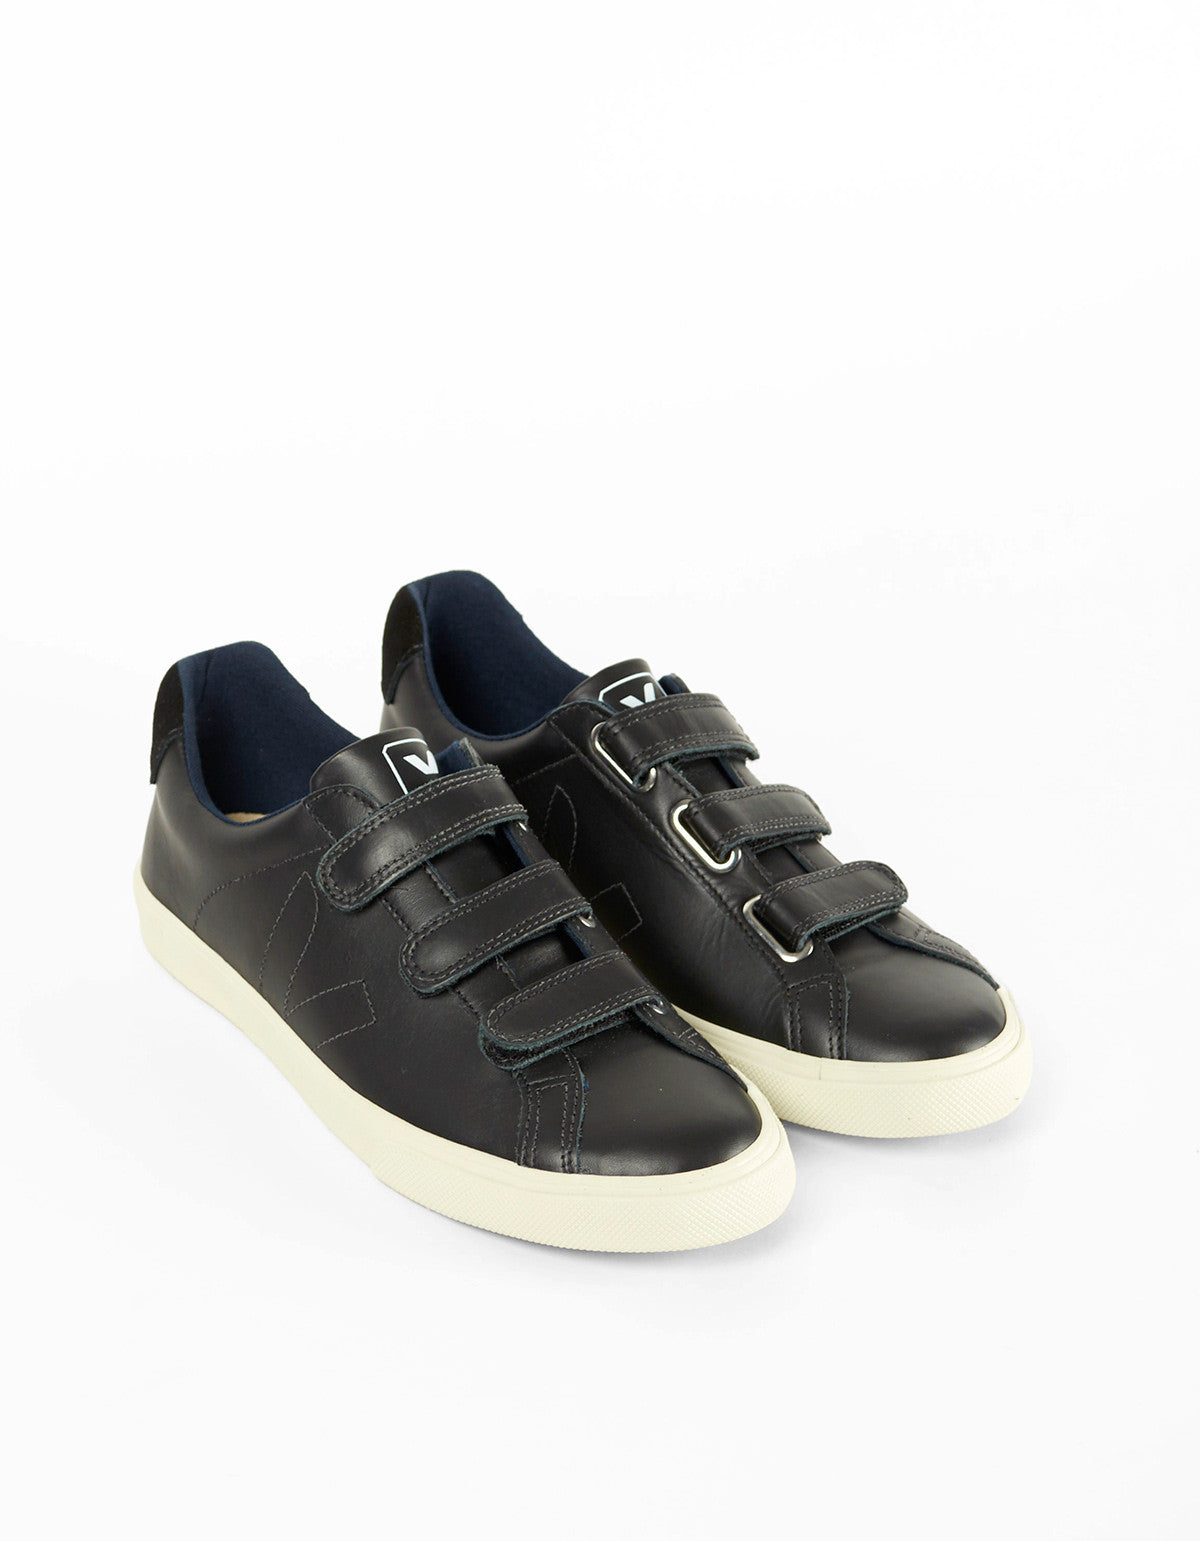 Veja Esplar 3 Locks Leather Sneaker Black Black - Still Life - 2